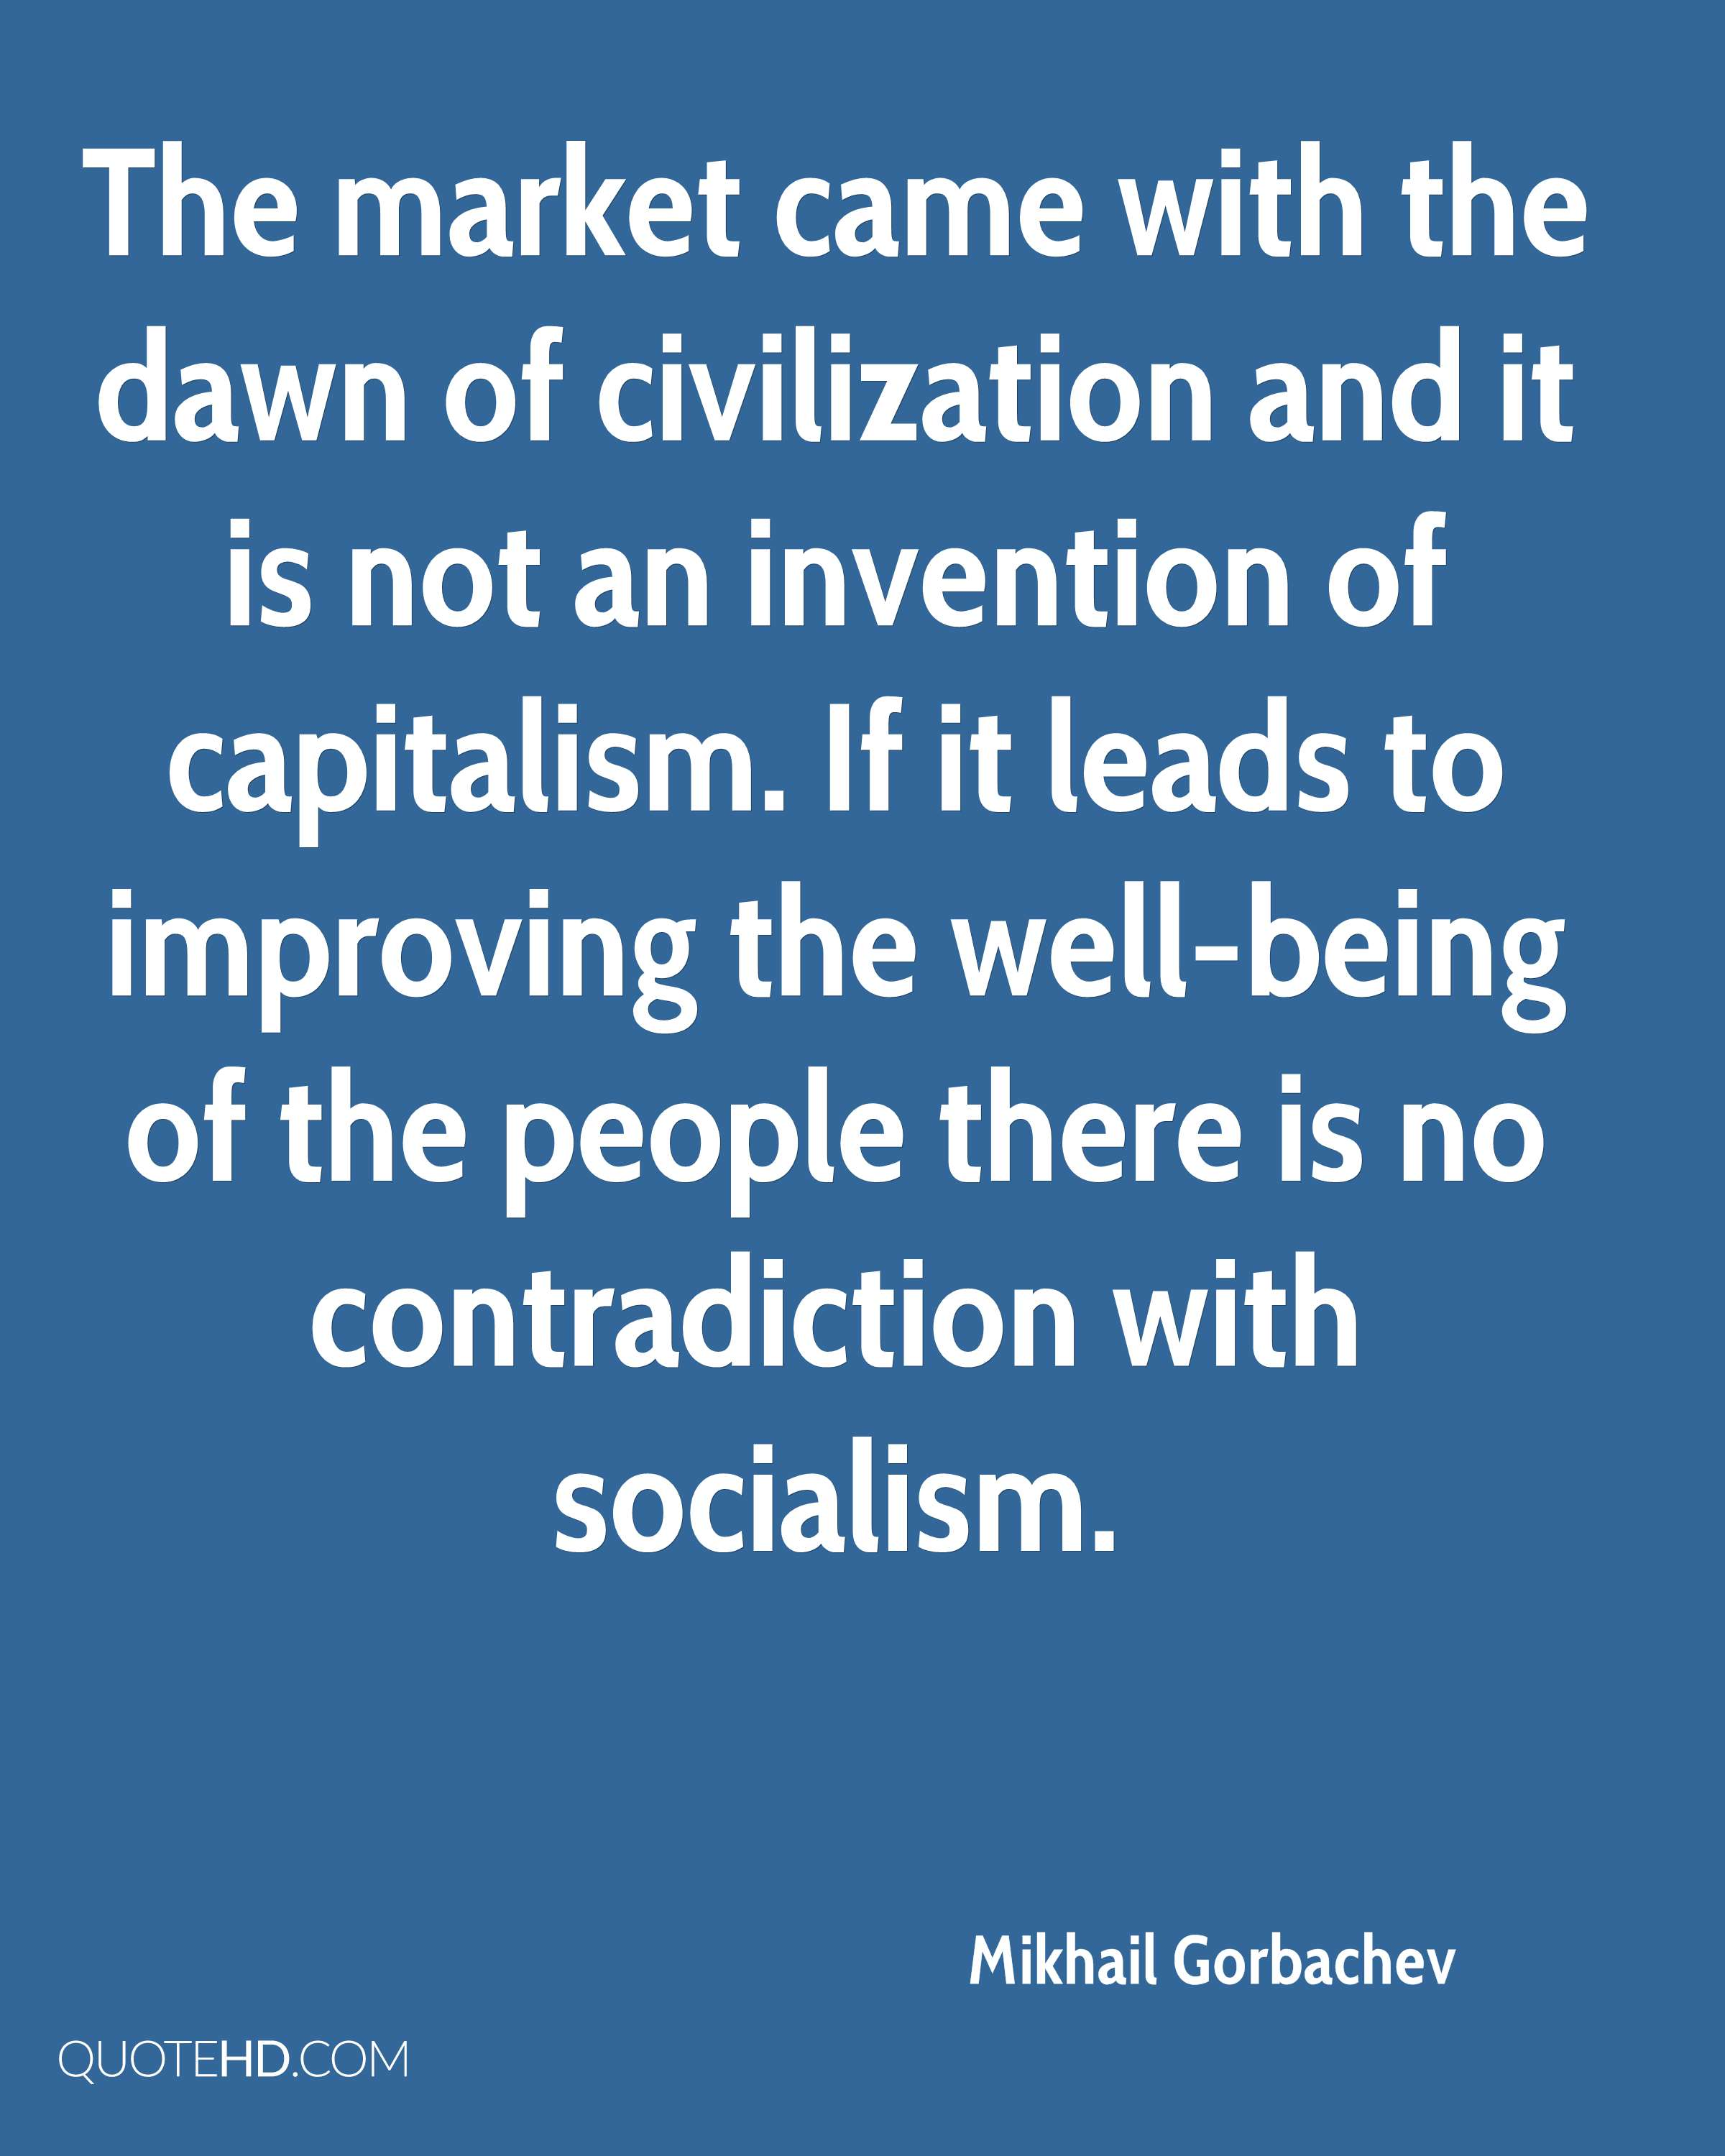 The market came with the dawn of civilization and it is not an invention of capitalism. If it leads to improving the well-being of the people there is no contradiction with socialism.